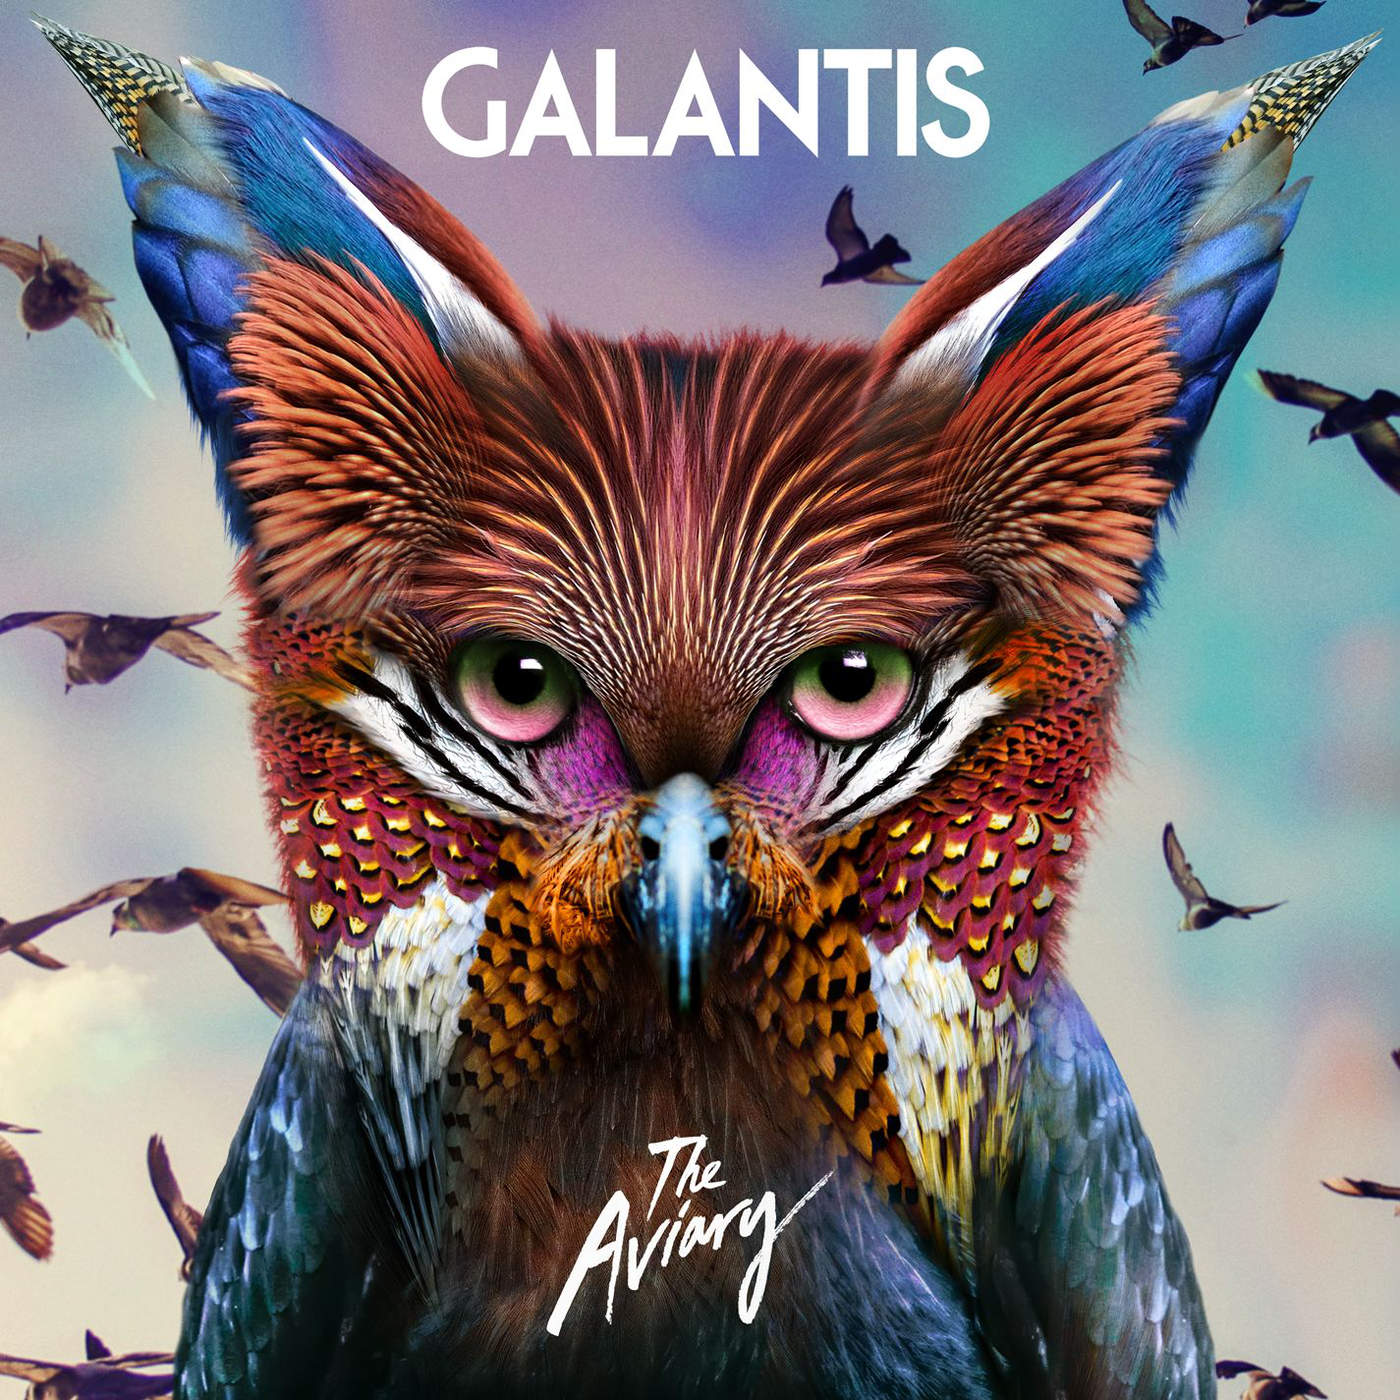 Galantis - The Aviary Cover